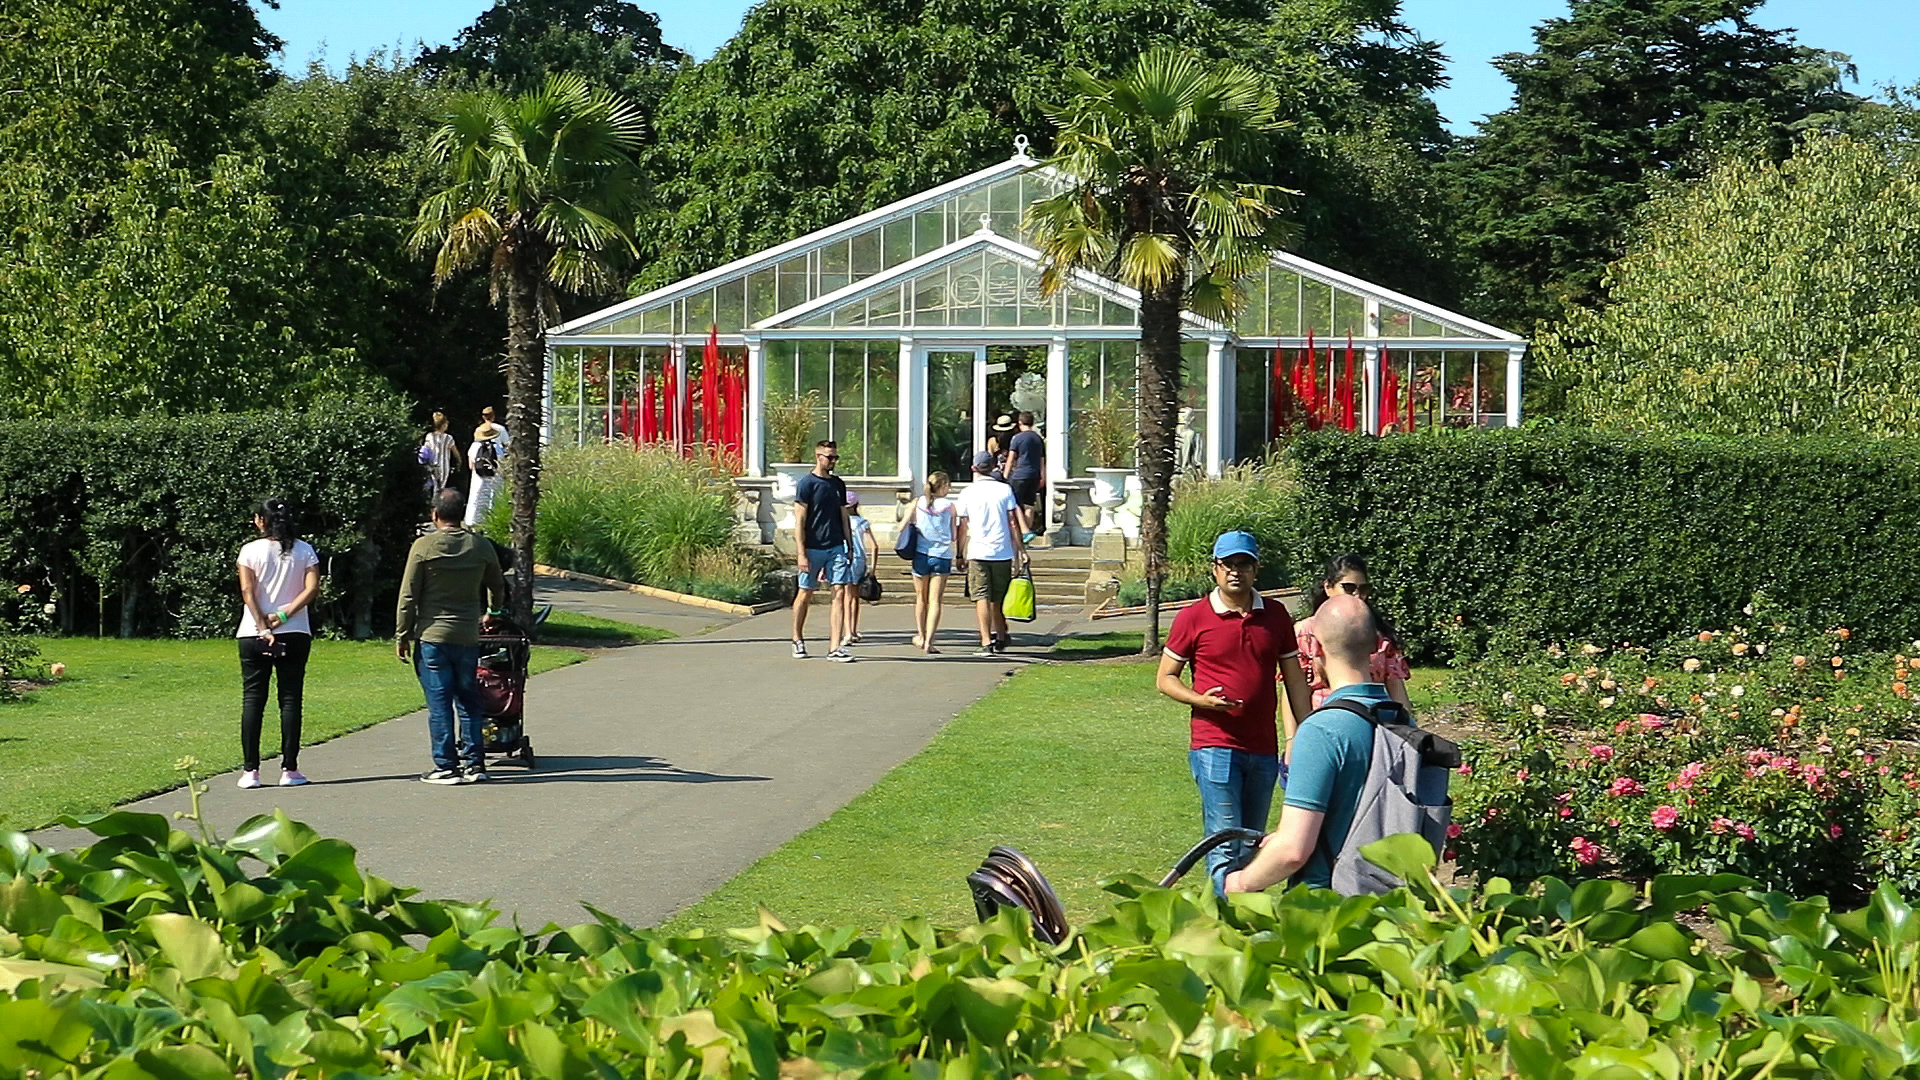 A glass house with lilies inside and people outside in Kew gardens